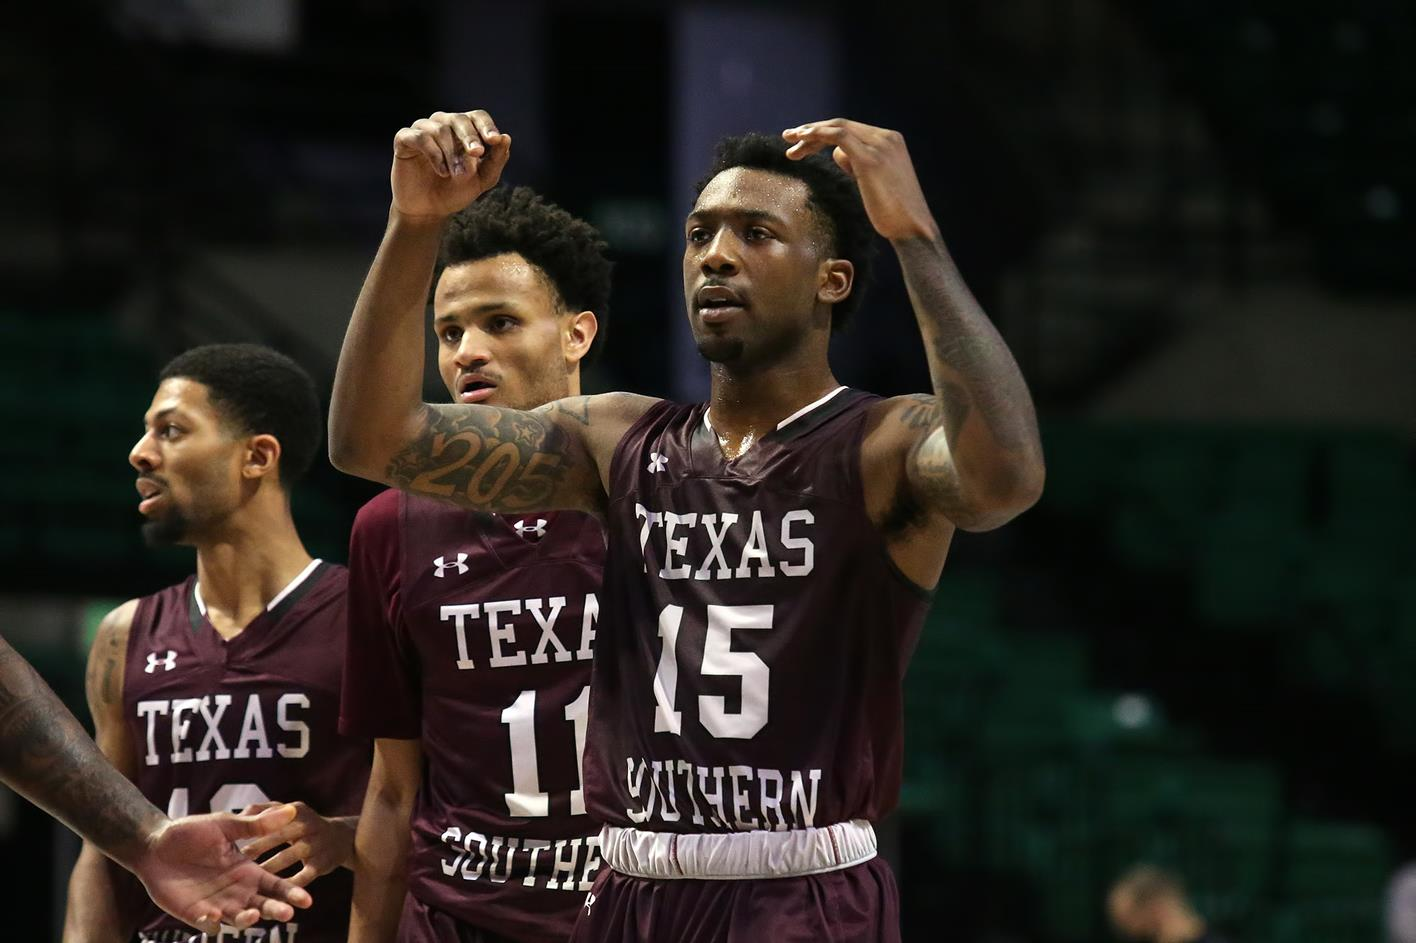 <div>Championship Saturday: Tigers To Face Prairie View A&M For NCAA Tournament Berth</div>